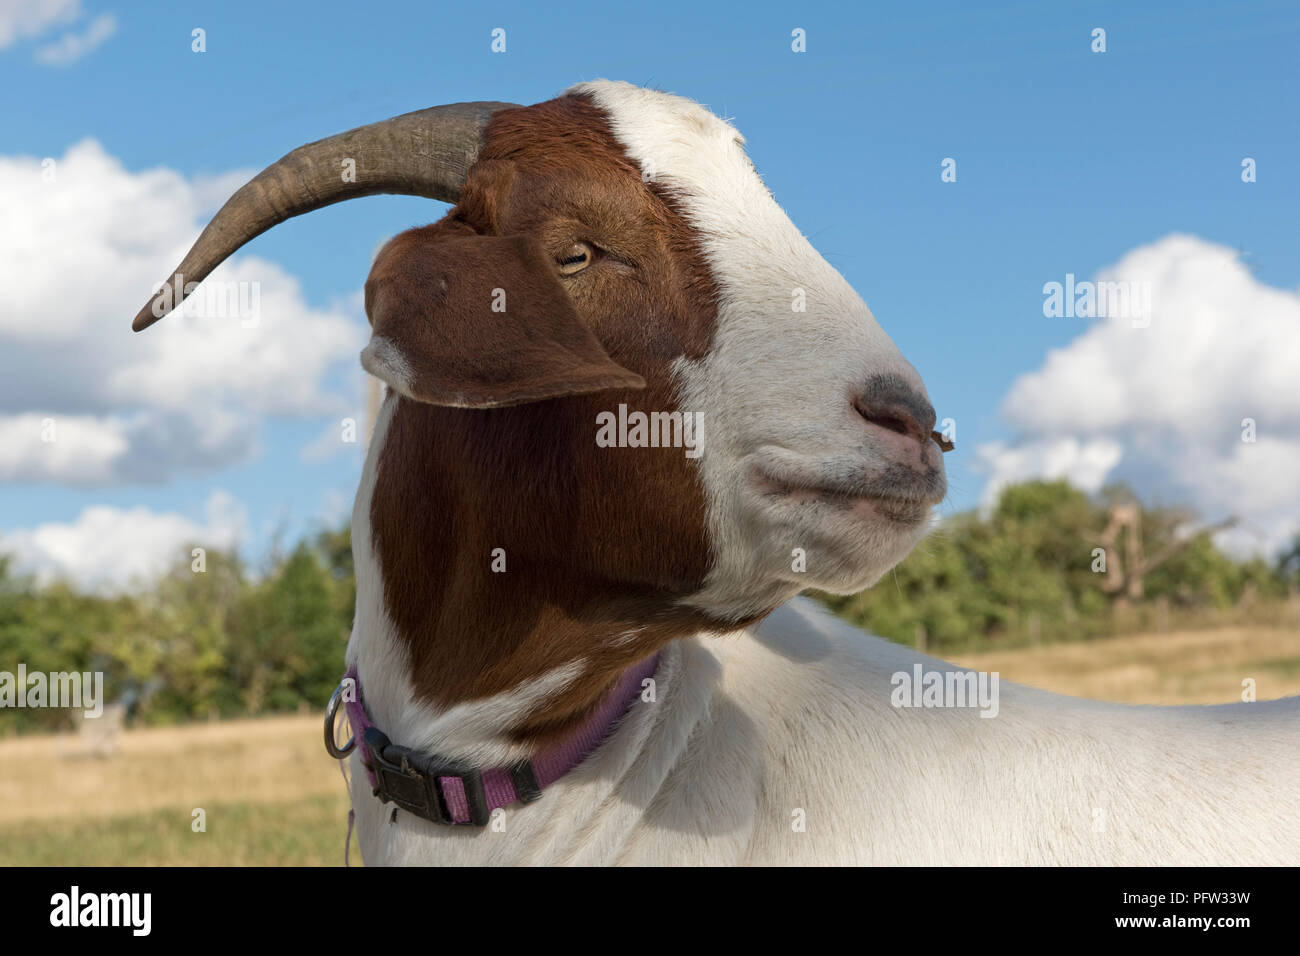 Head of a neutered 'wether' Boer goat pet with a purple collar and good horns, Berkshire, August - Stock Image